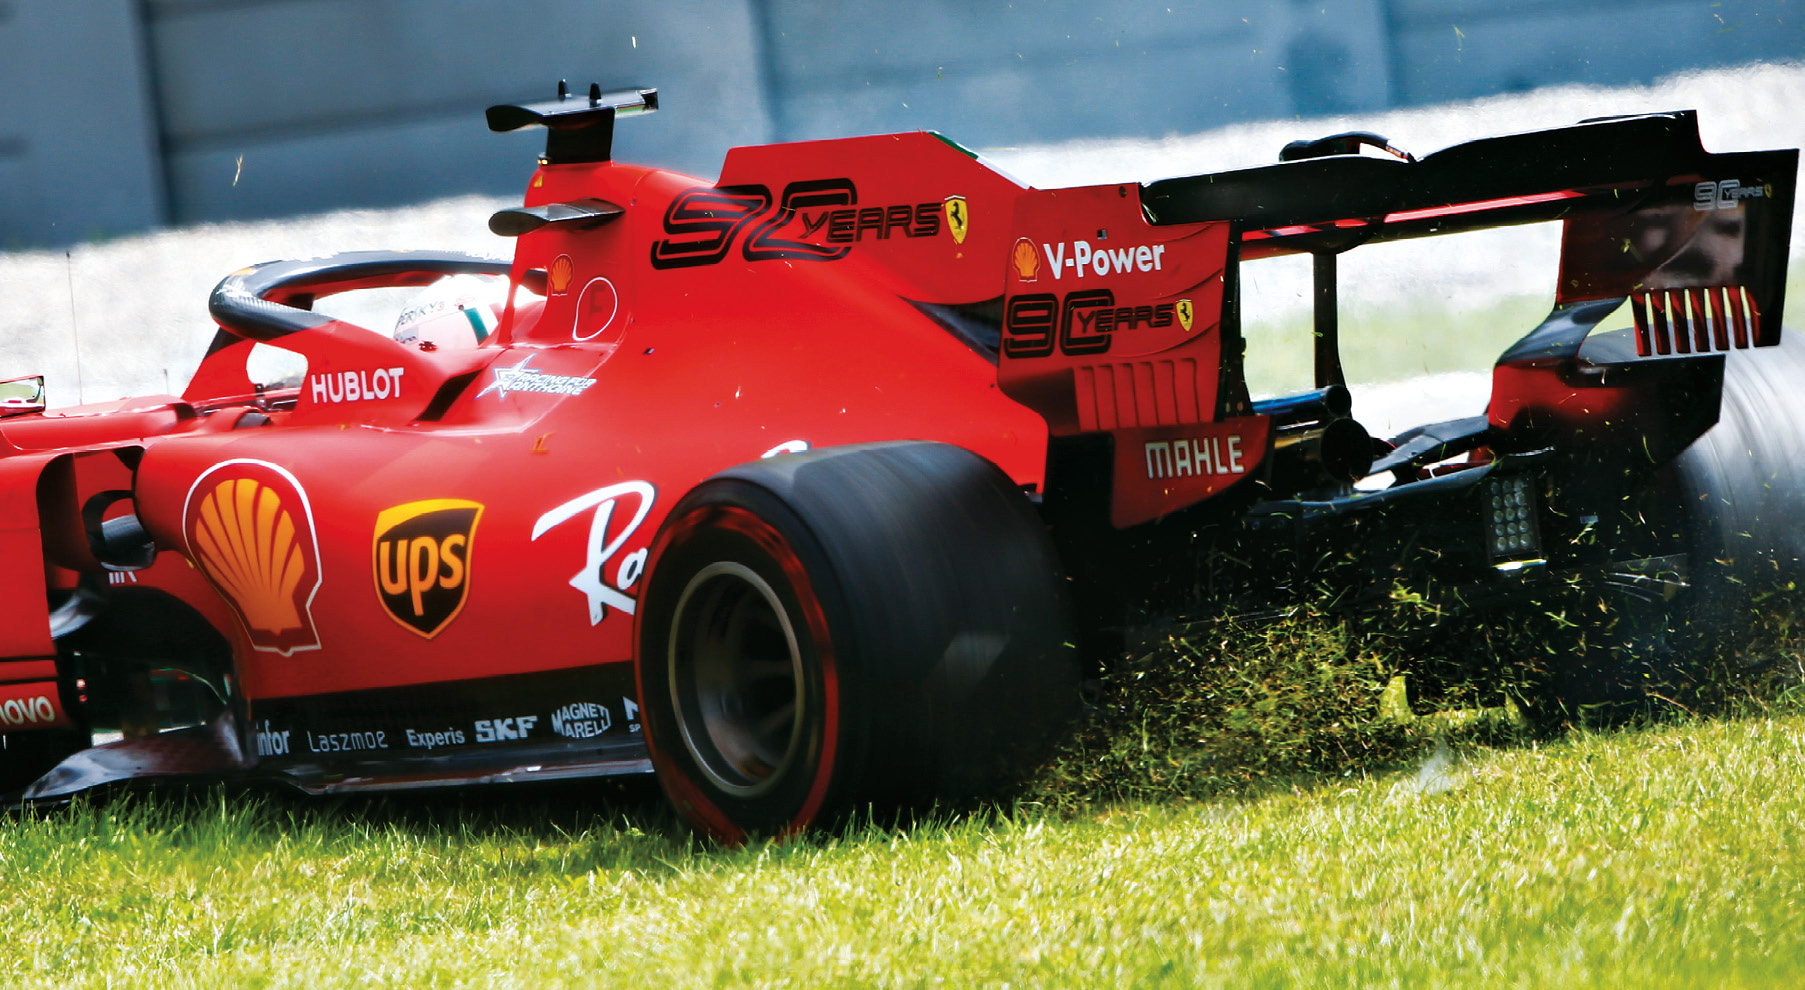 Monza wasn't kind to Vettel, who spun and then made a rookie error while rejoining